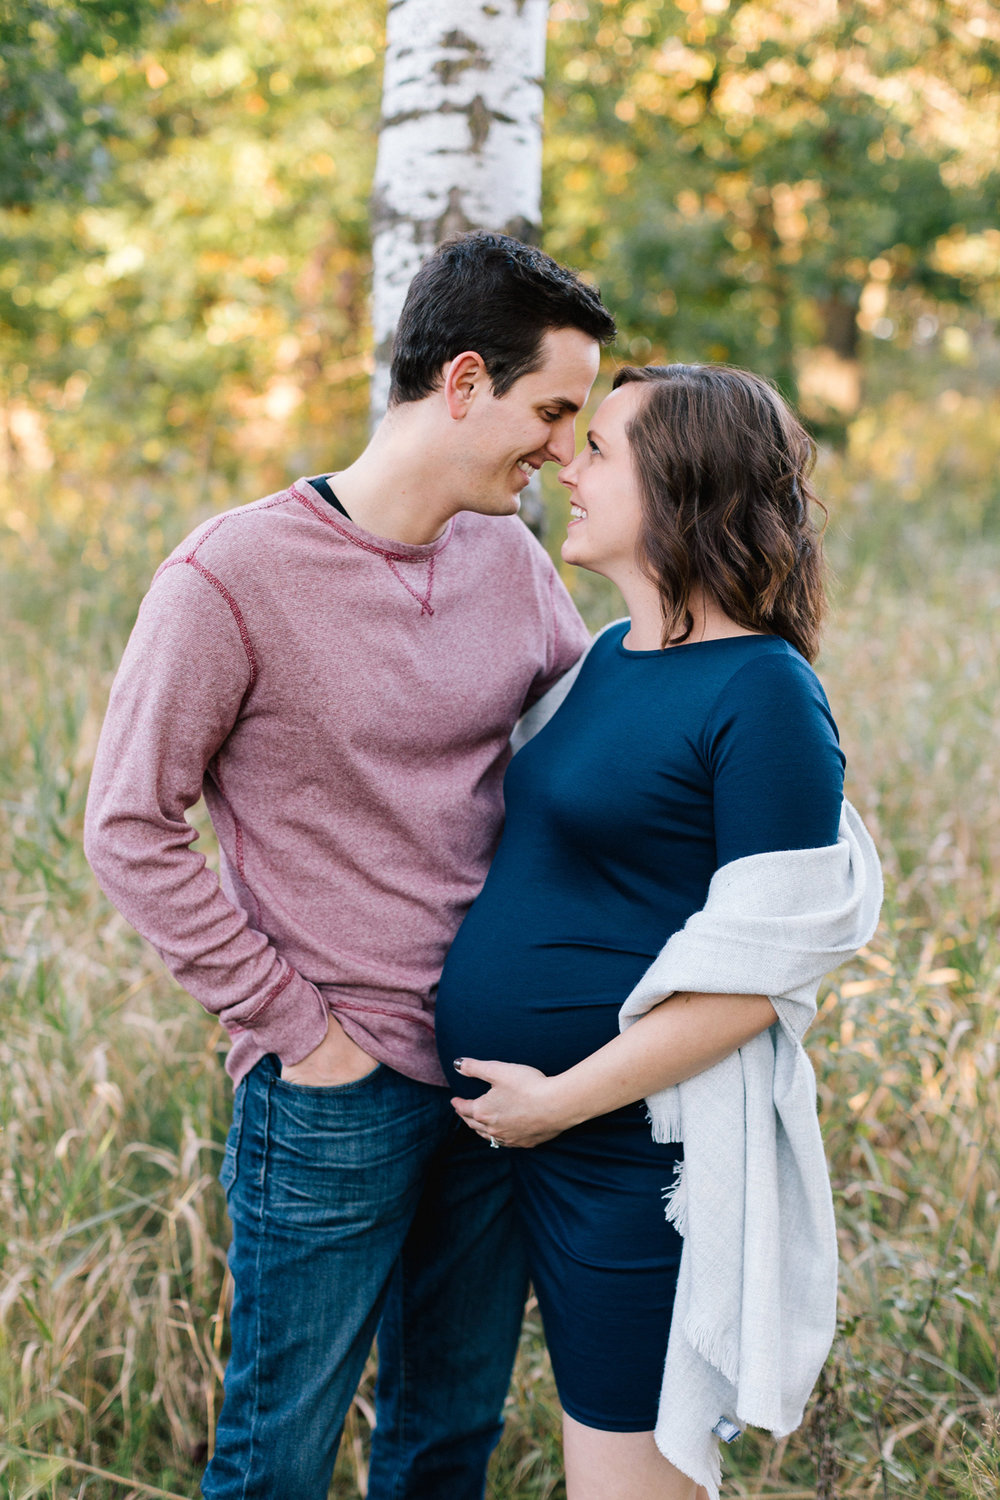 www.allisonhopperstad.com, Maternity Session, Minnesota Maternity Photographer, Couples Maternity Session, Lebanon Hills Session, Minnesota Maternity Session, Outdoor Maternity Session